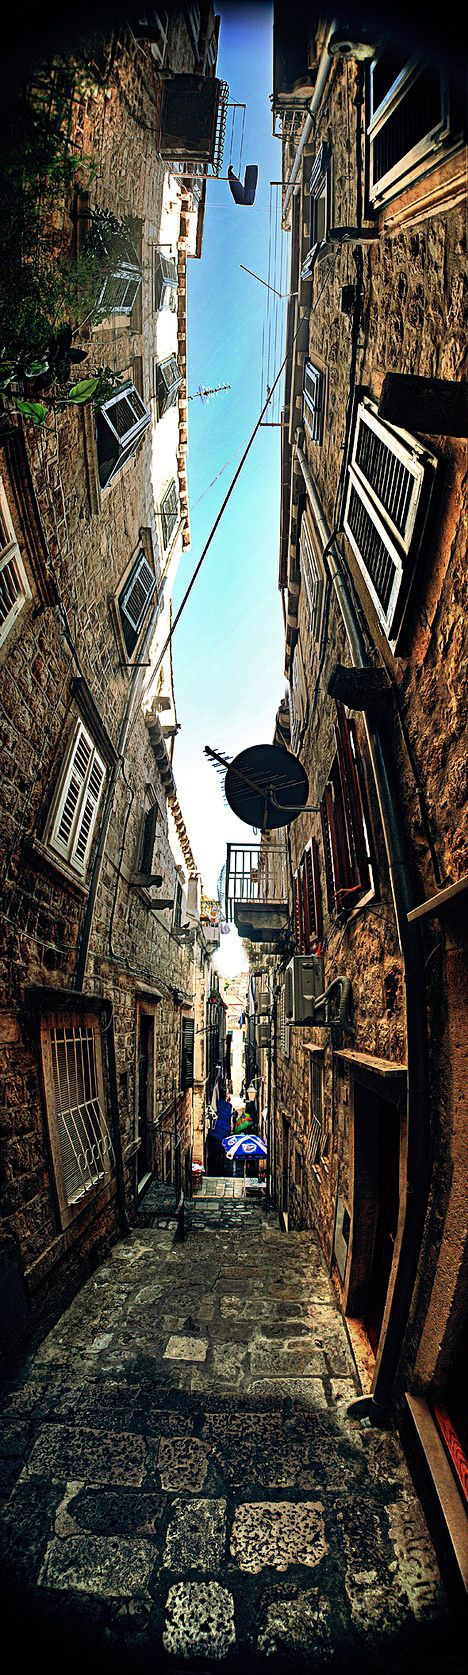 Croatia - Dubrovnik  --This is a clever way of turning the traditional panoramic picture on its head to display the narrow space between buildings.